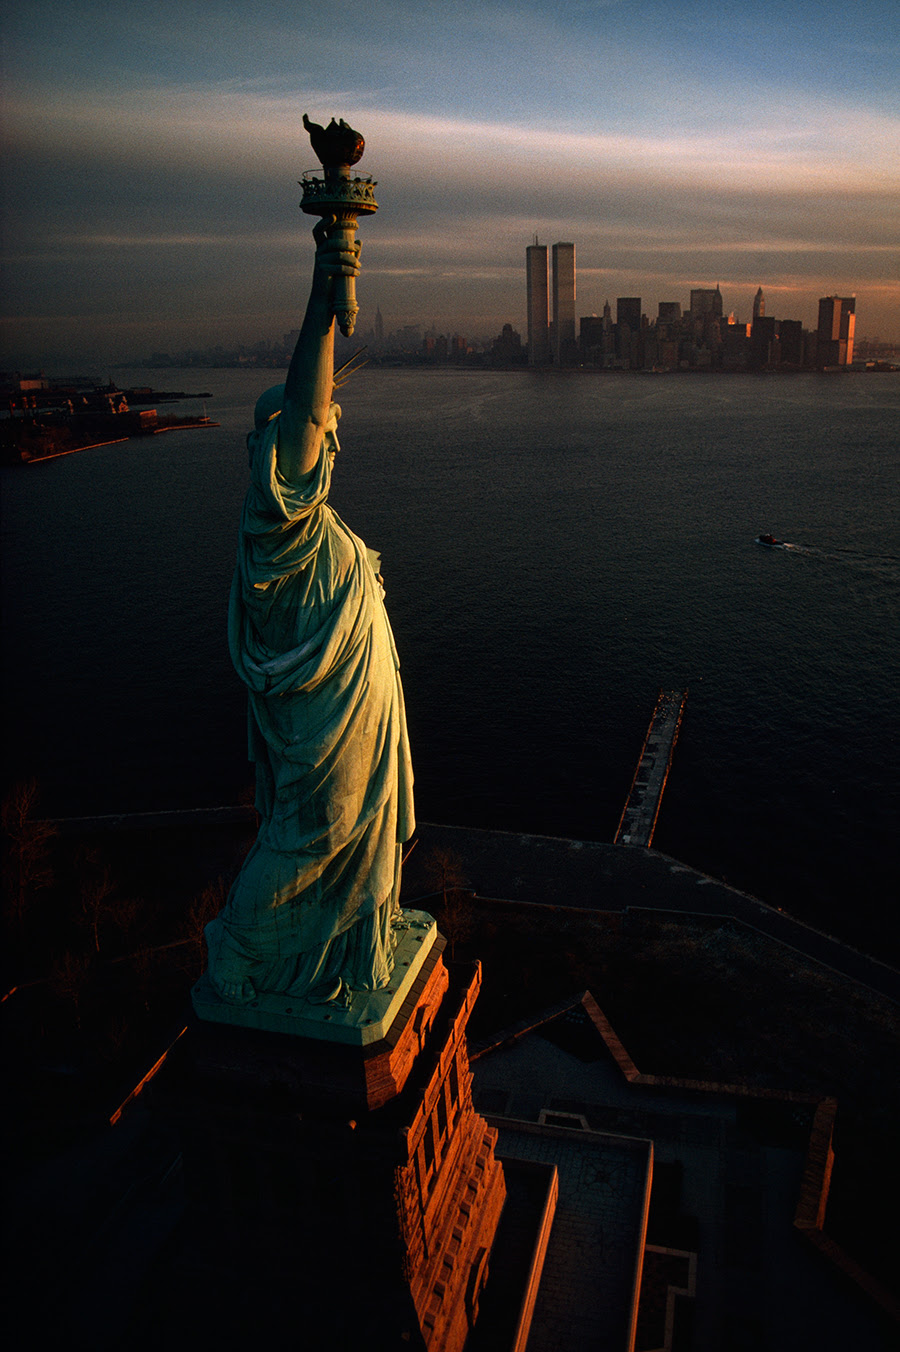 Amazing Aerial Photograph Showing Statue Of Liberty And Twin